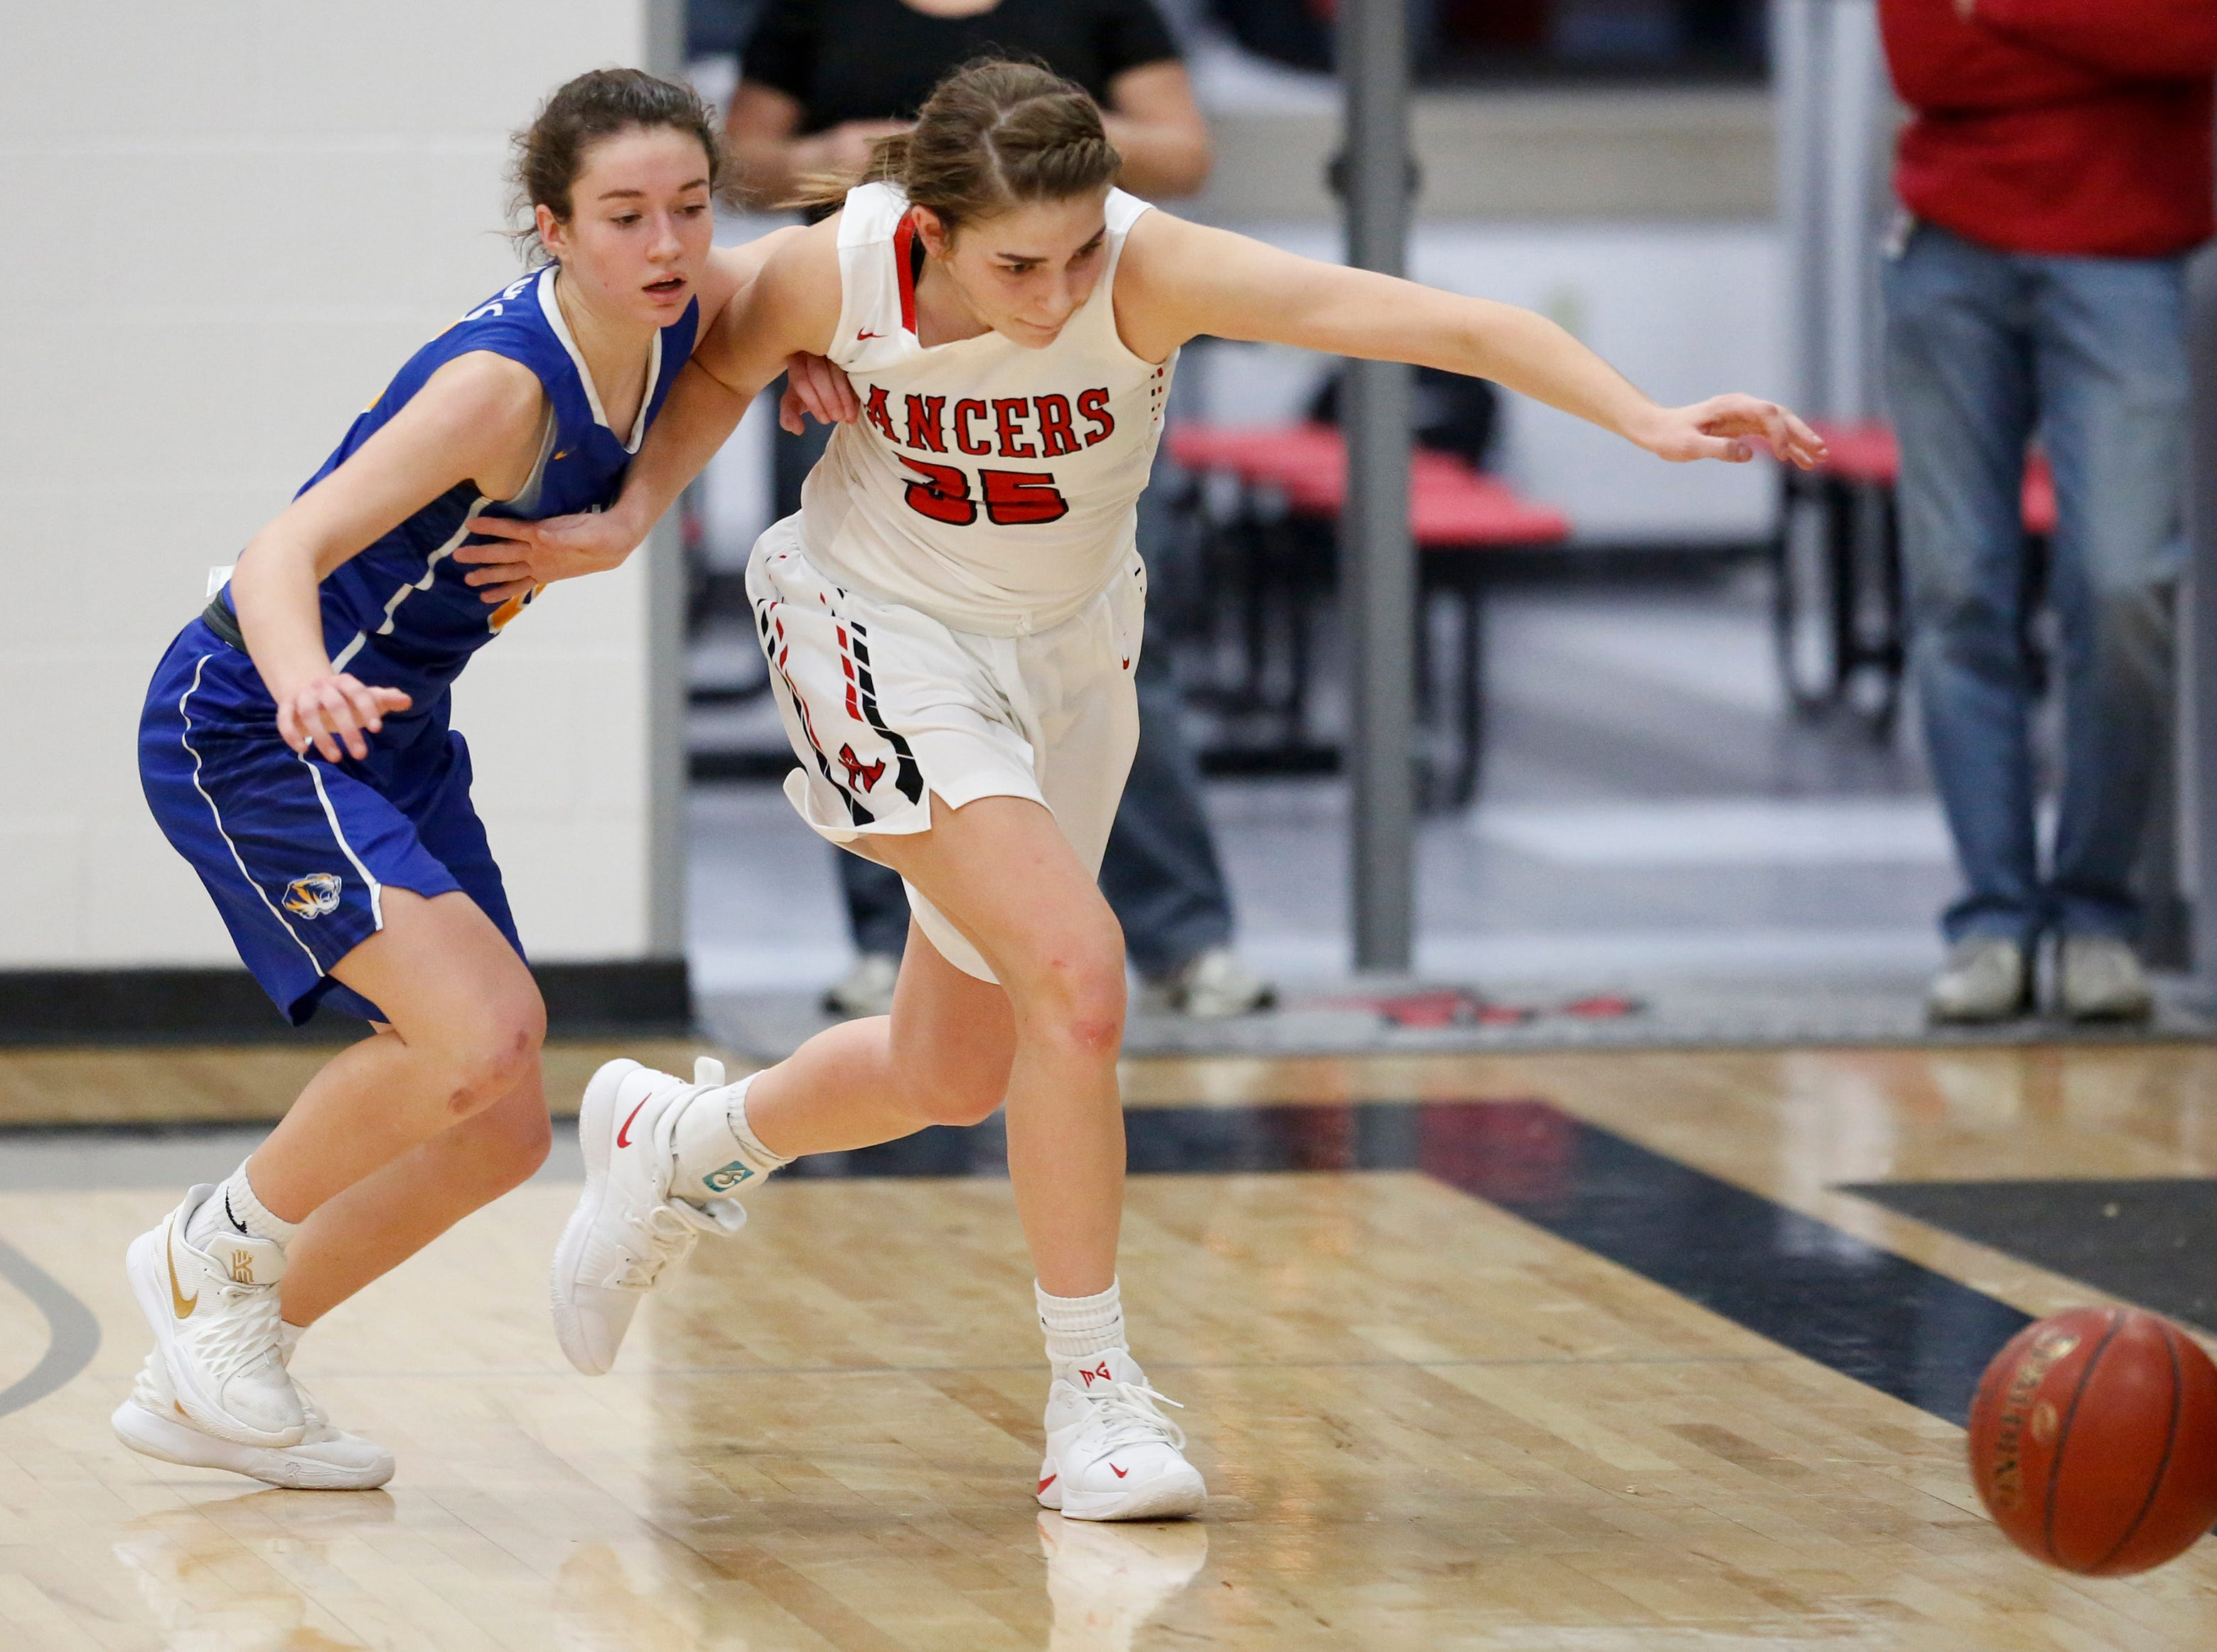 Manitowoc Lutheran's Madison Gorte fends off Howards Grove's Mackenzie Holzwart for a loose ball at Manitowoc Lutheran High School Tuesday, December 18, 2018, in Manitowoc, Wis. Joshua Clark/USA TODAY NETWORK-Wisconsin